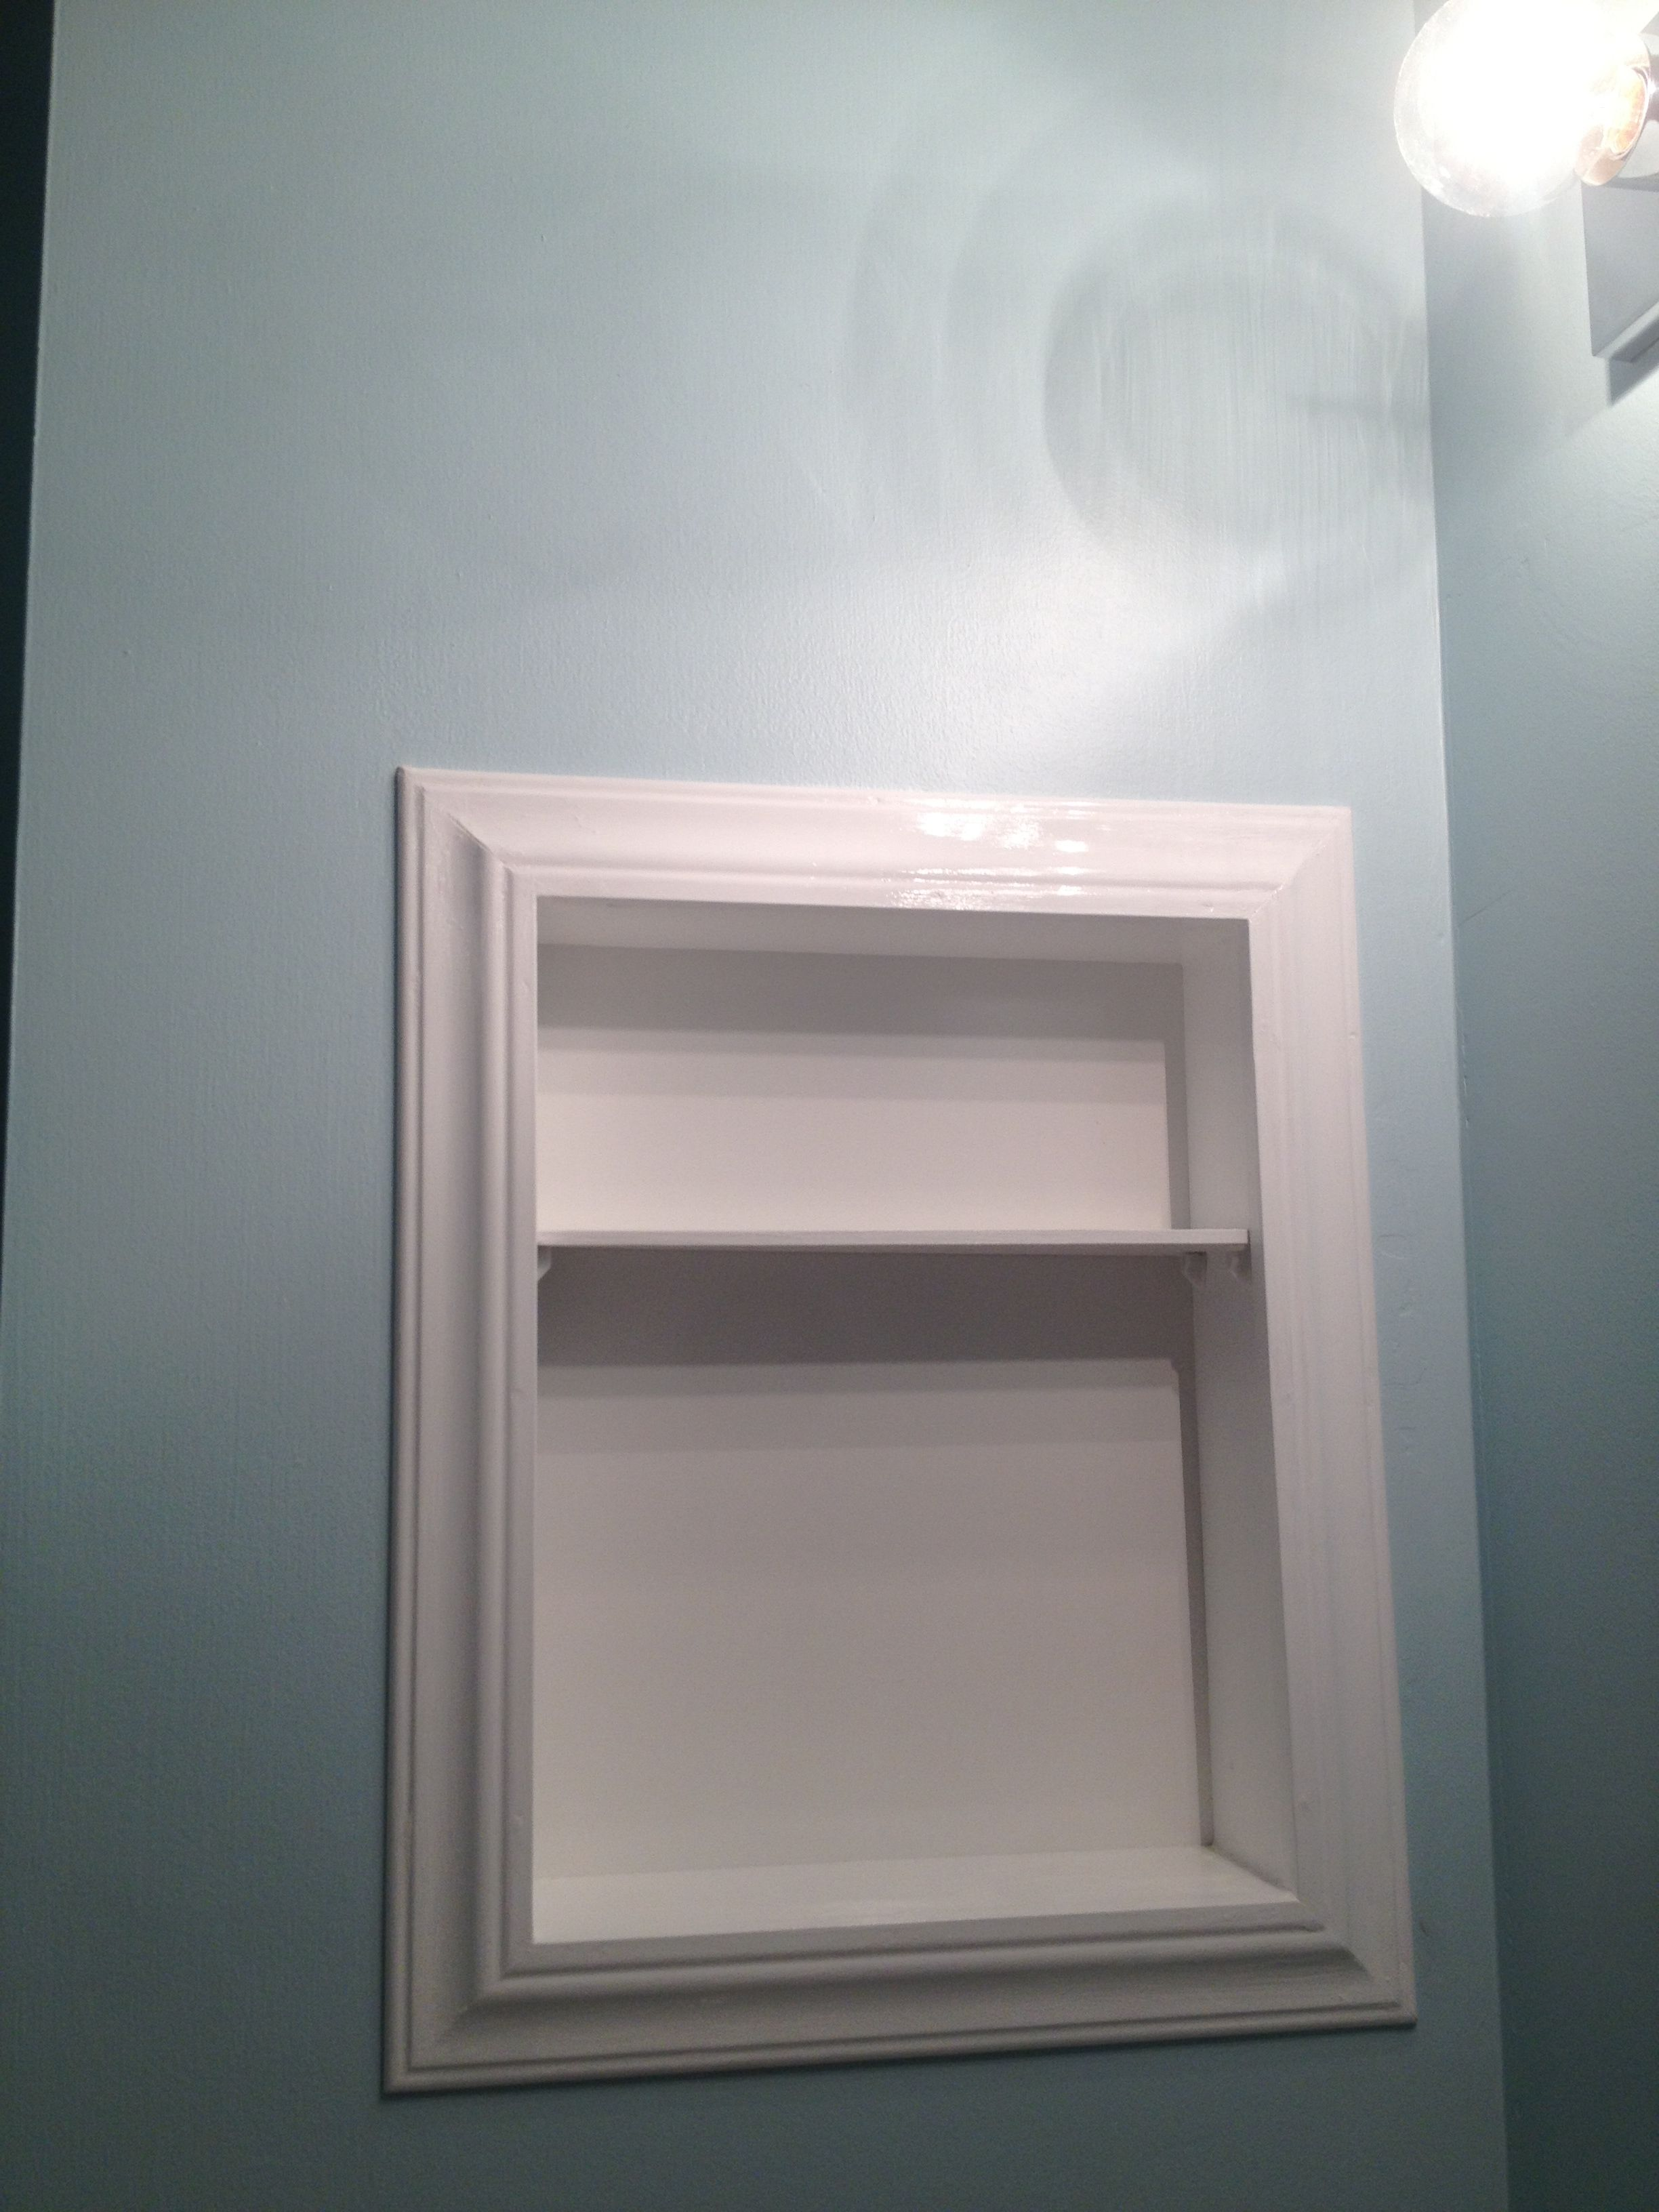 My husband turned our ugly old medicine cabinet into this